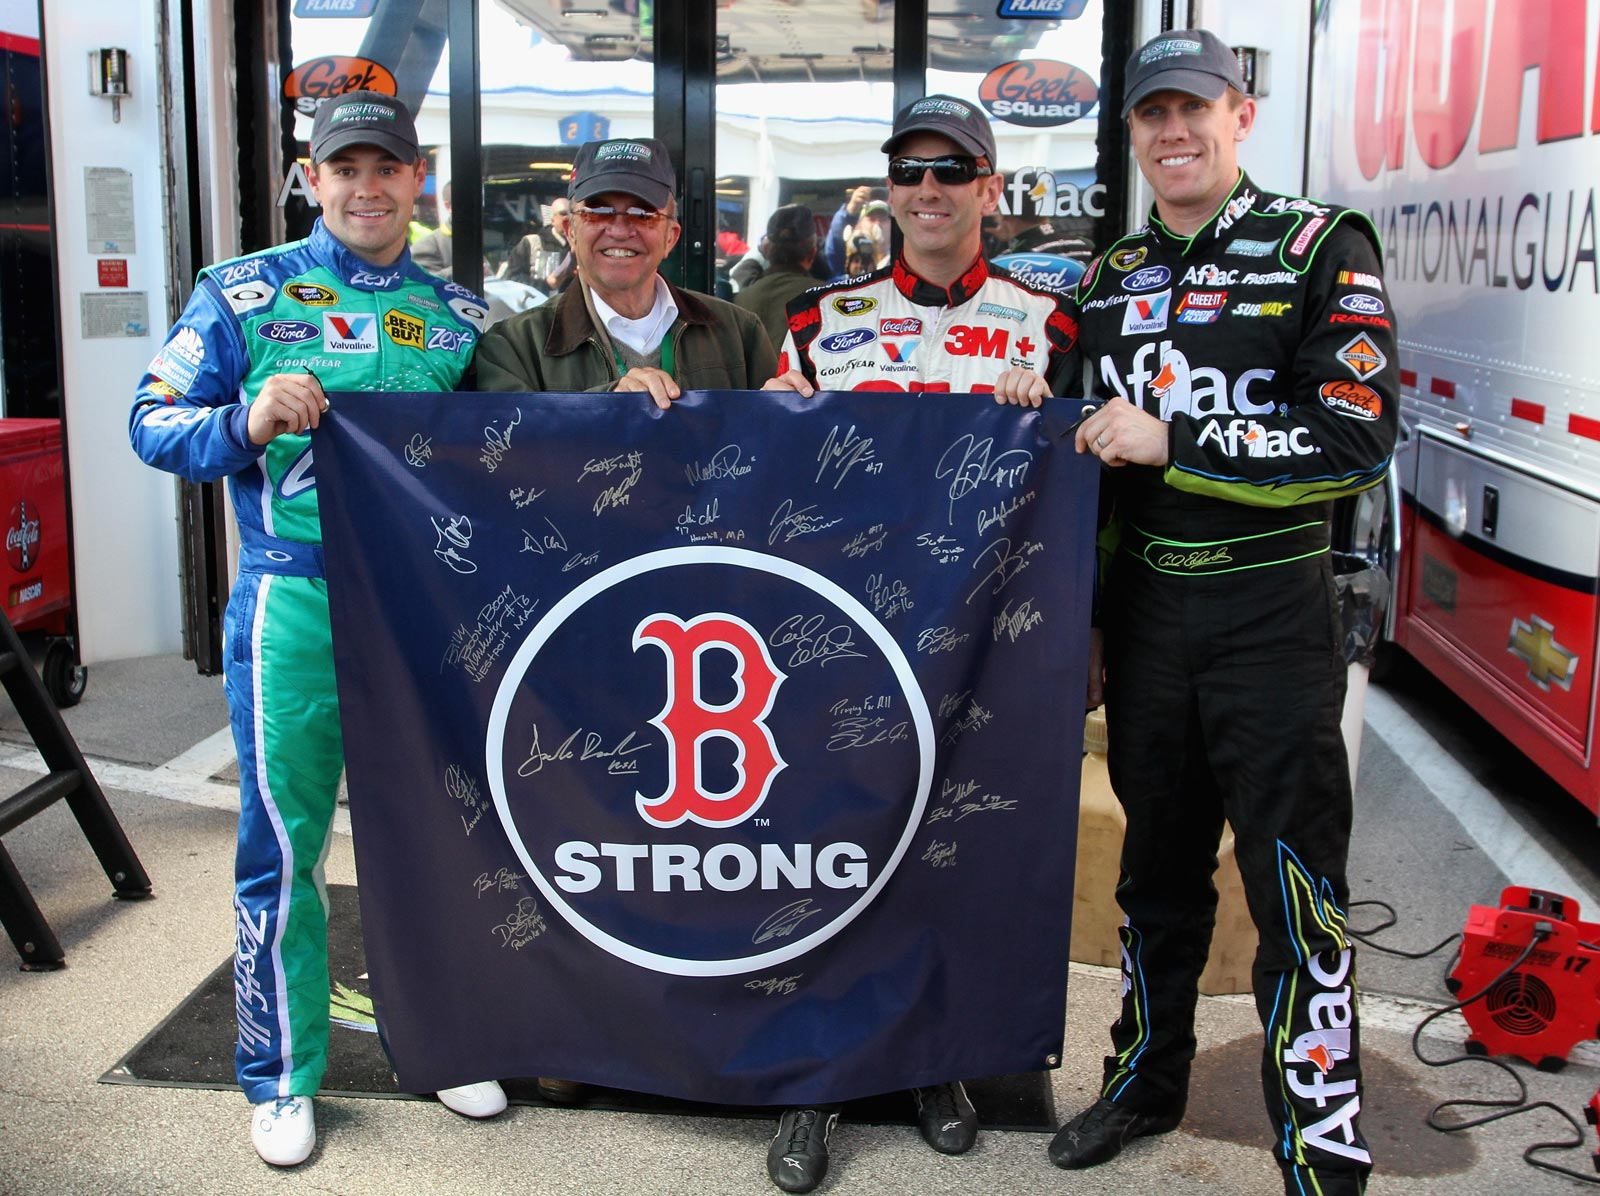 roush-fenway-racing-nascar-boston-marathon-2013-tribute